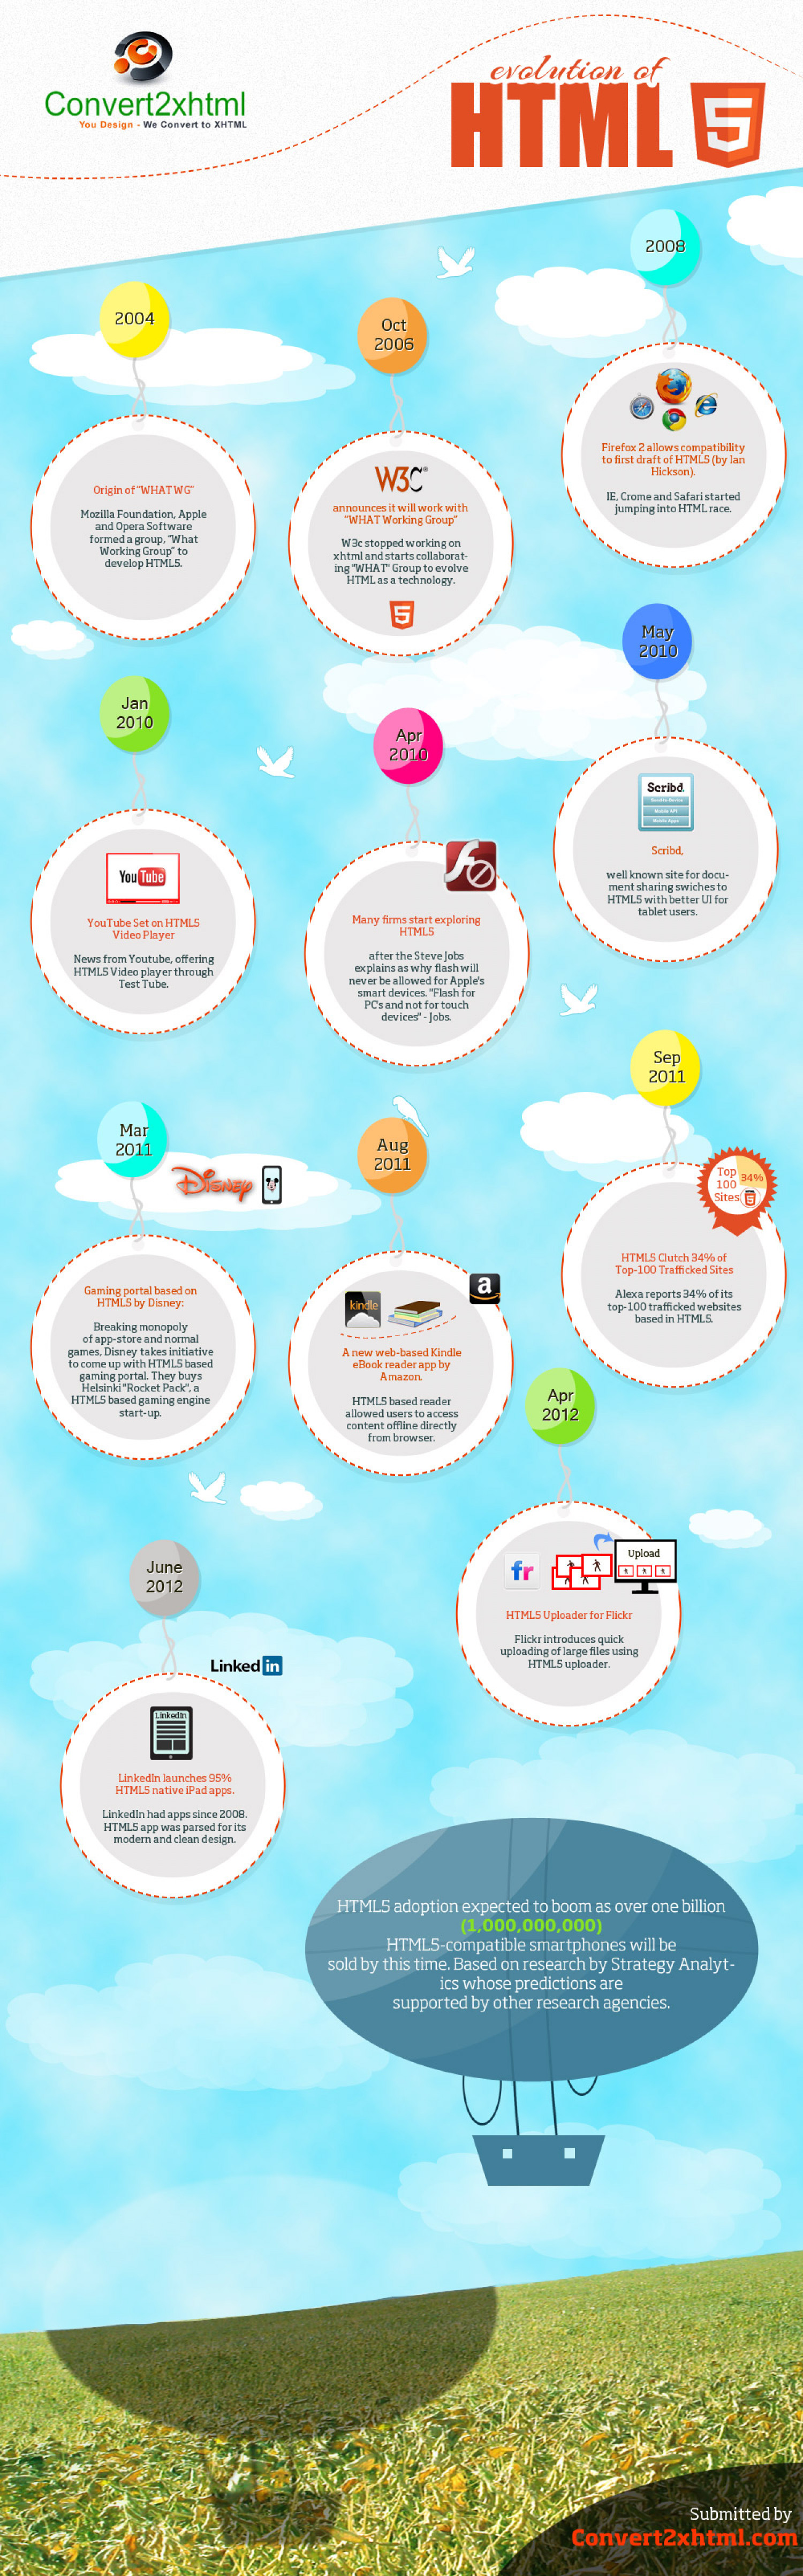 Evolution of HTML5 by Convert2xhtml Infographic